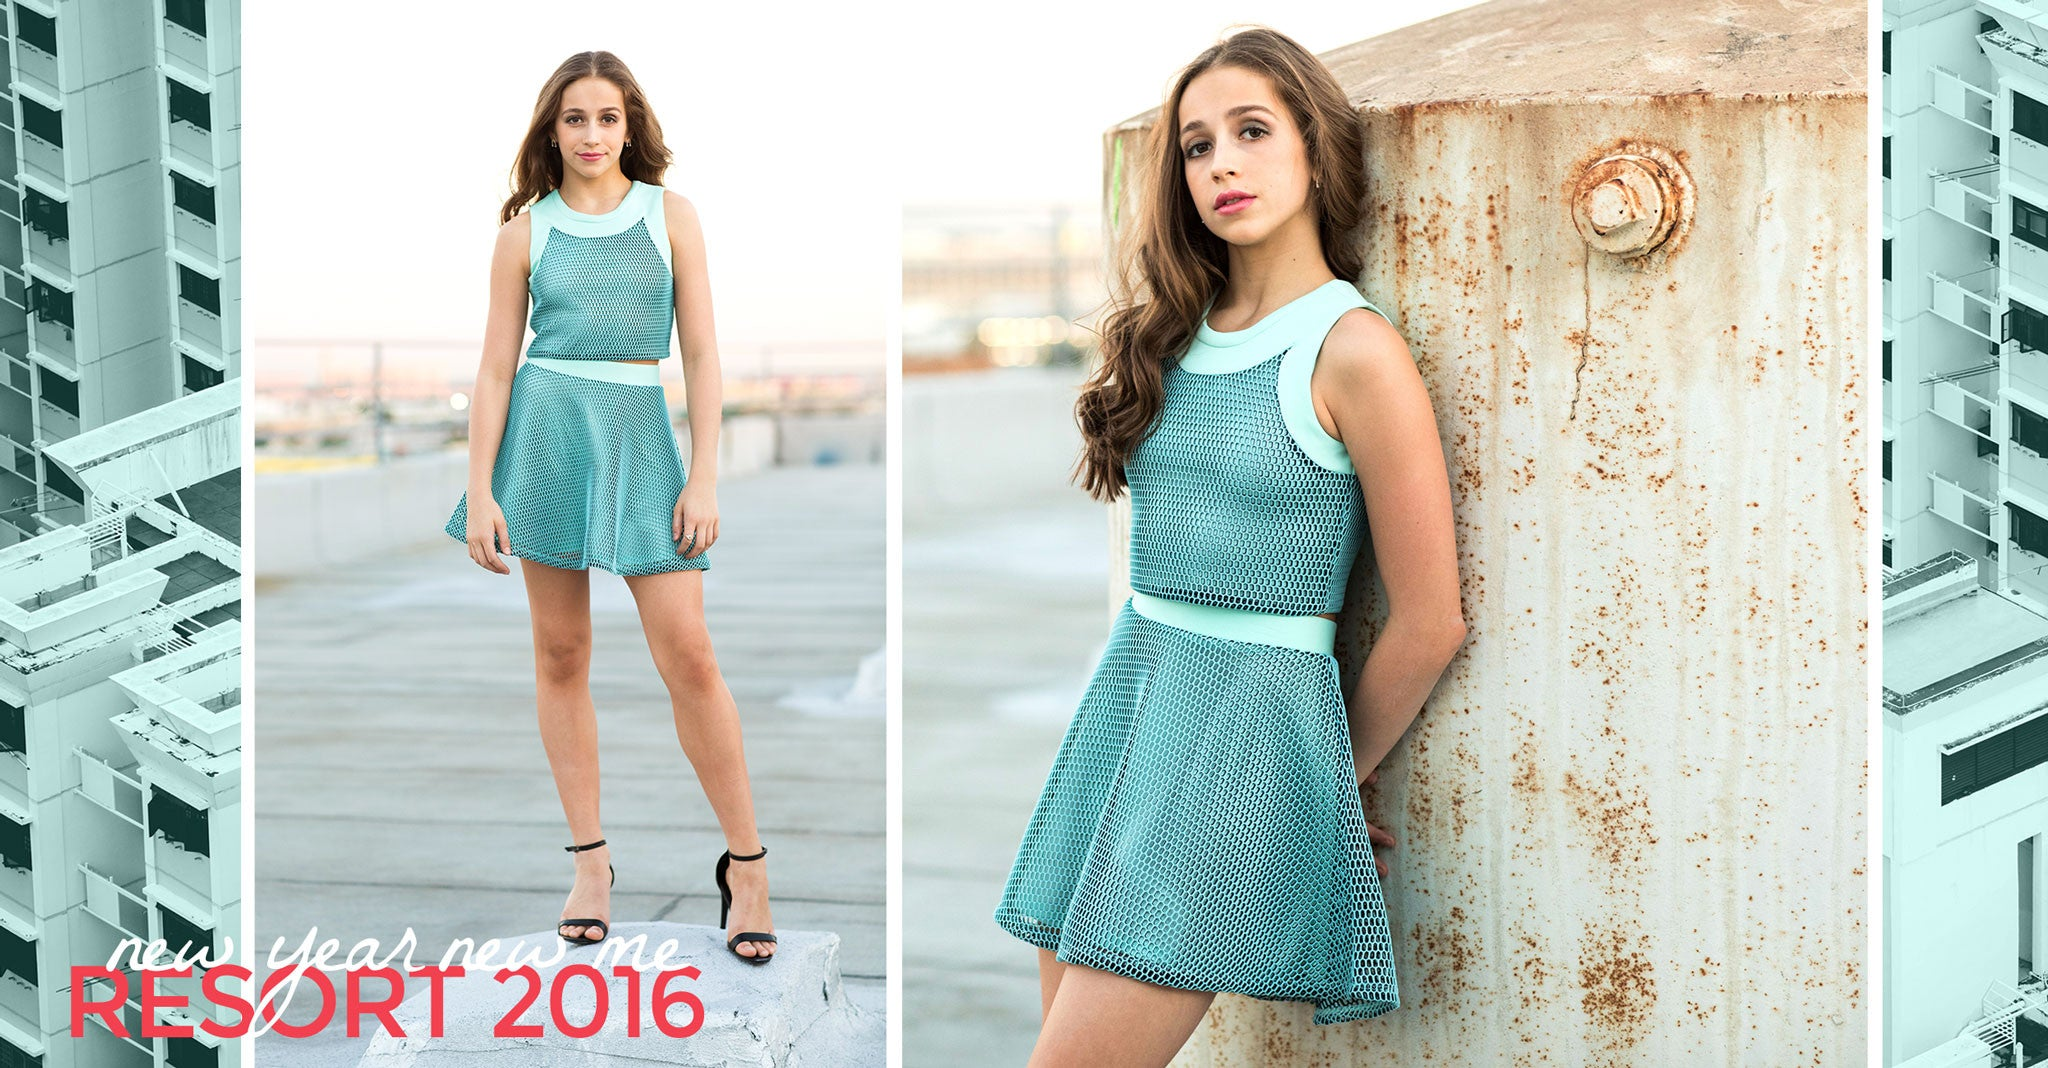 resort-2016-miss-behave-girl-dresses